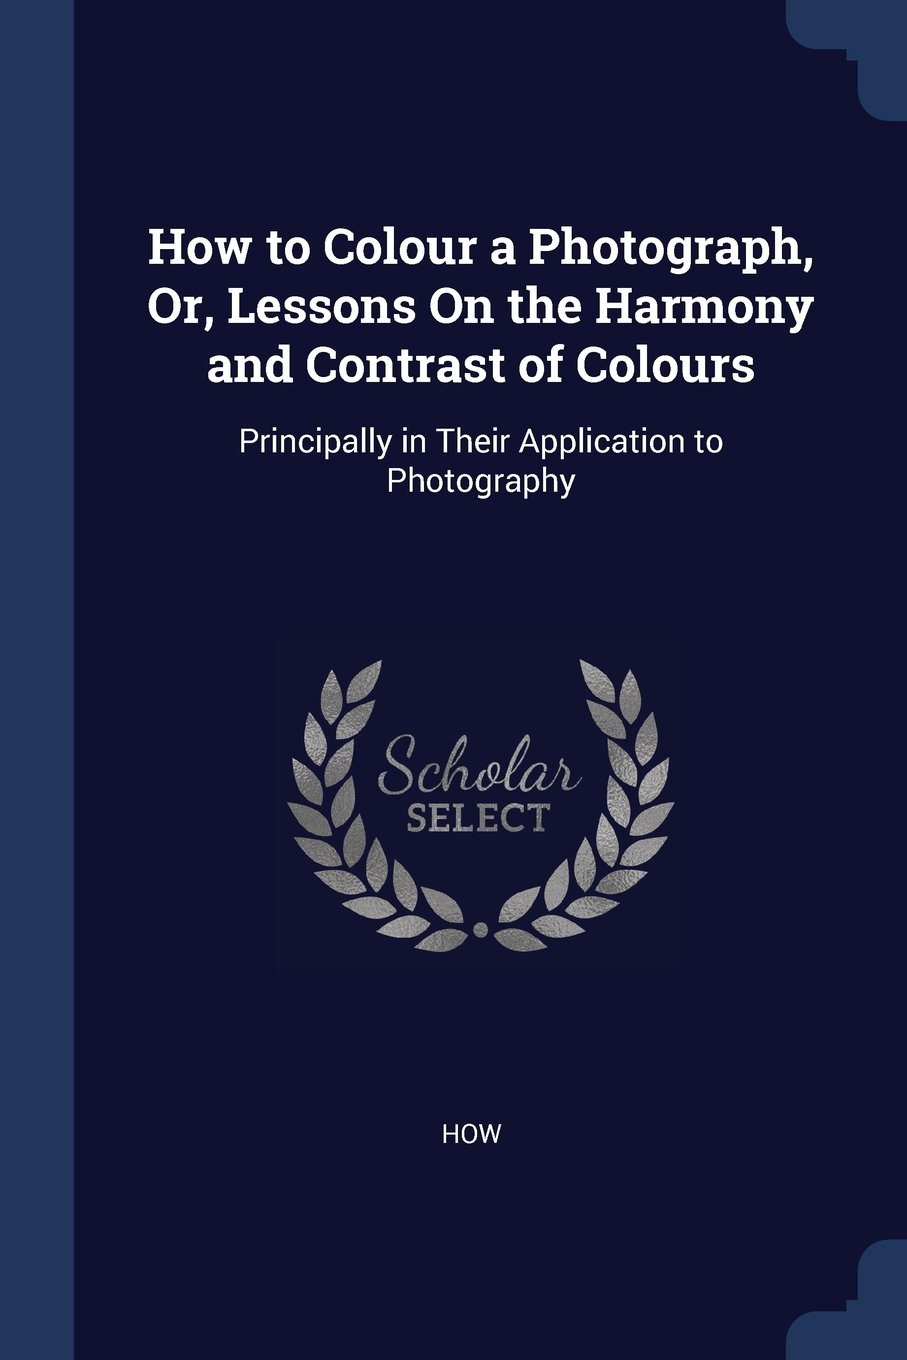 Download How to Colour a Photograph, Or, Lessons On the Harmony and Contrast of Colours: Principally in Their Application to Photography pdf